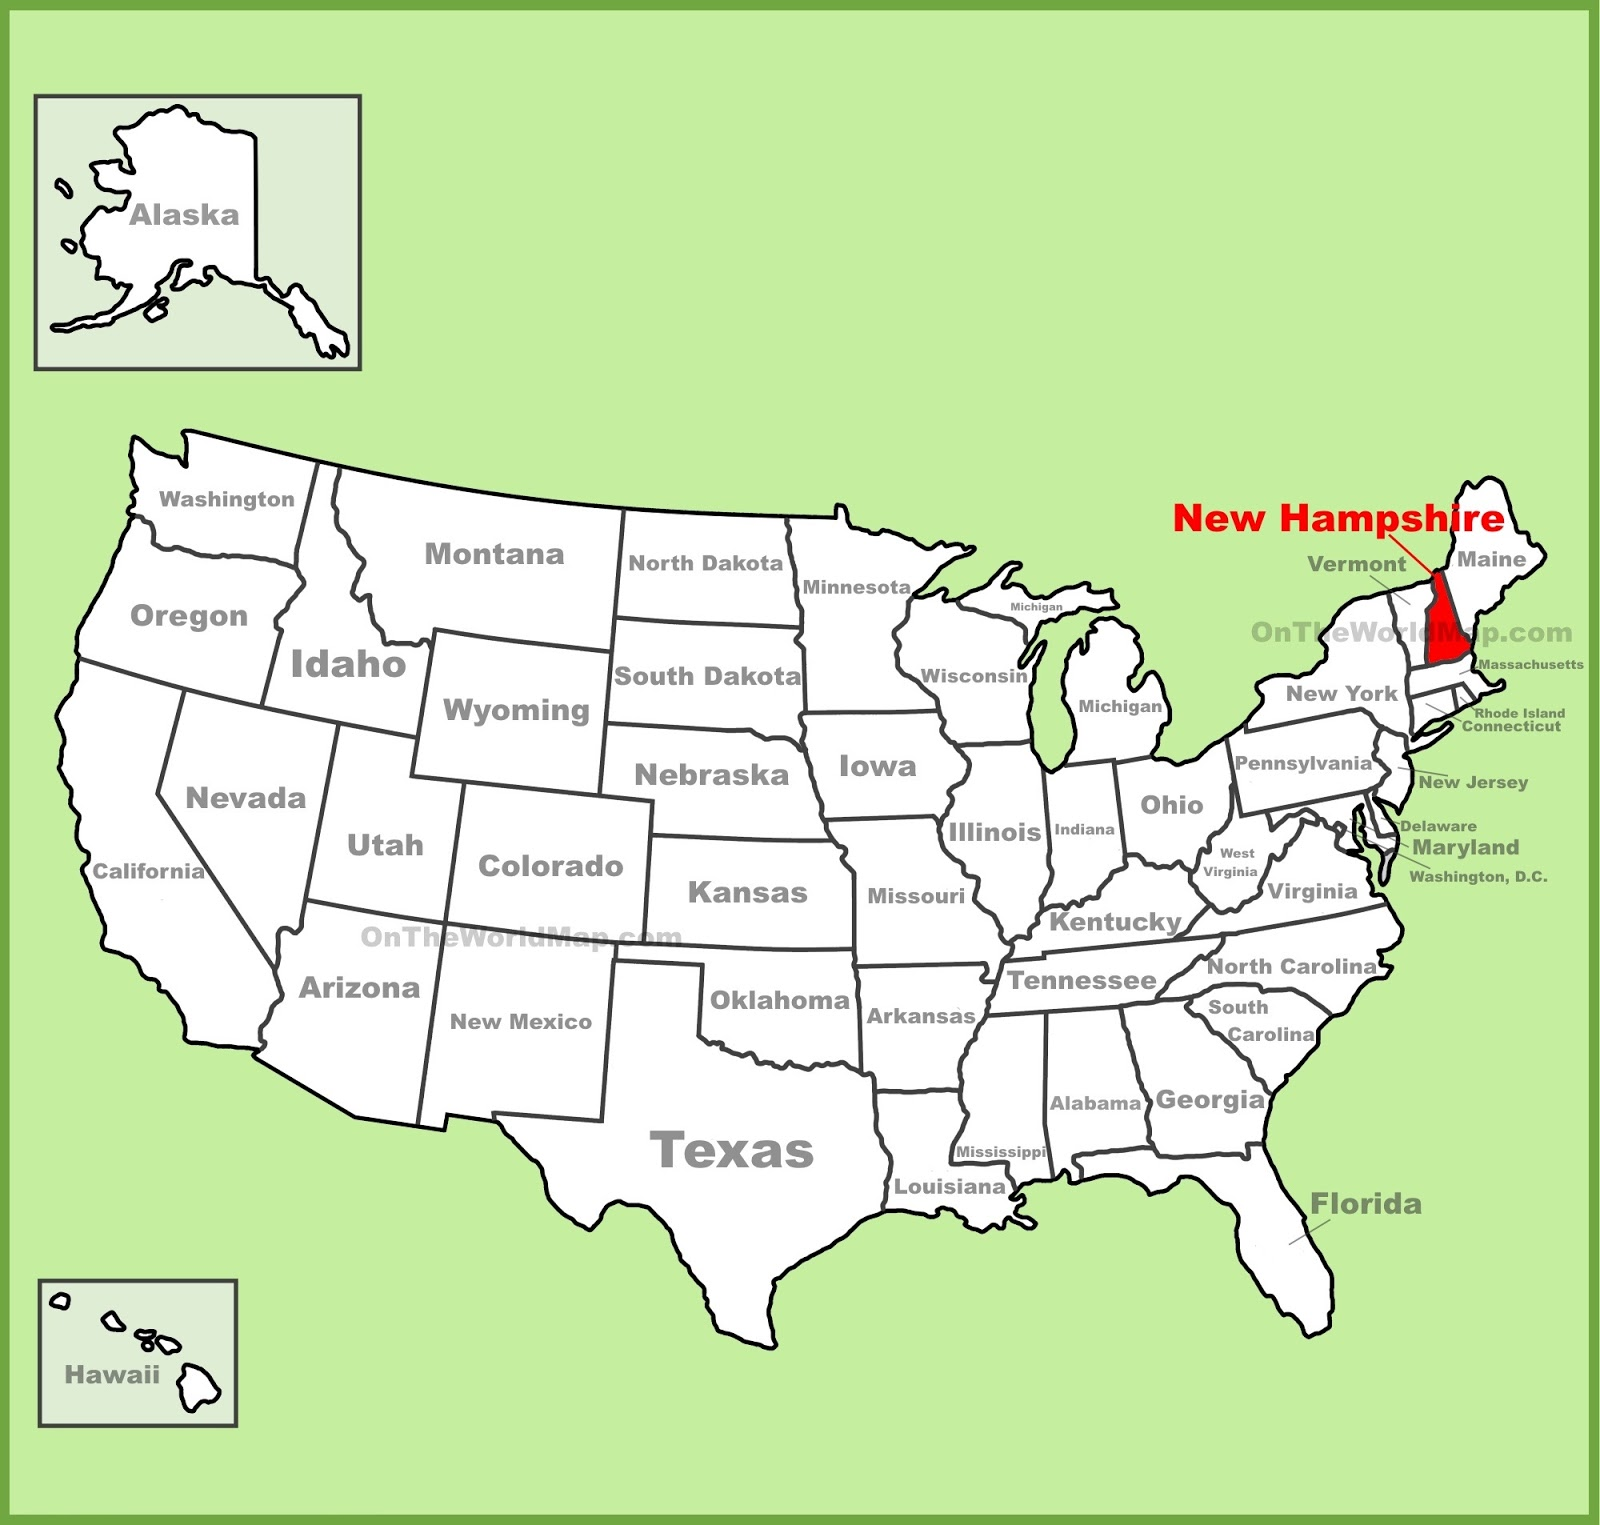 Map Of New Hampshire State Map Of America - New hampshire on us map